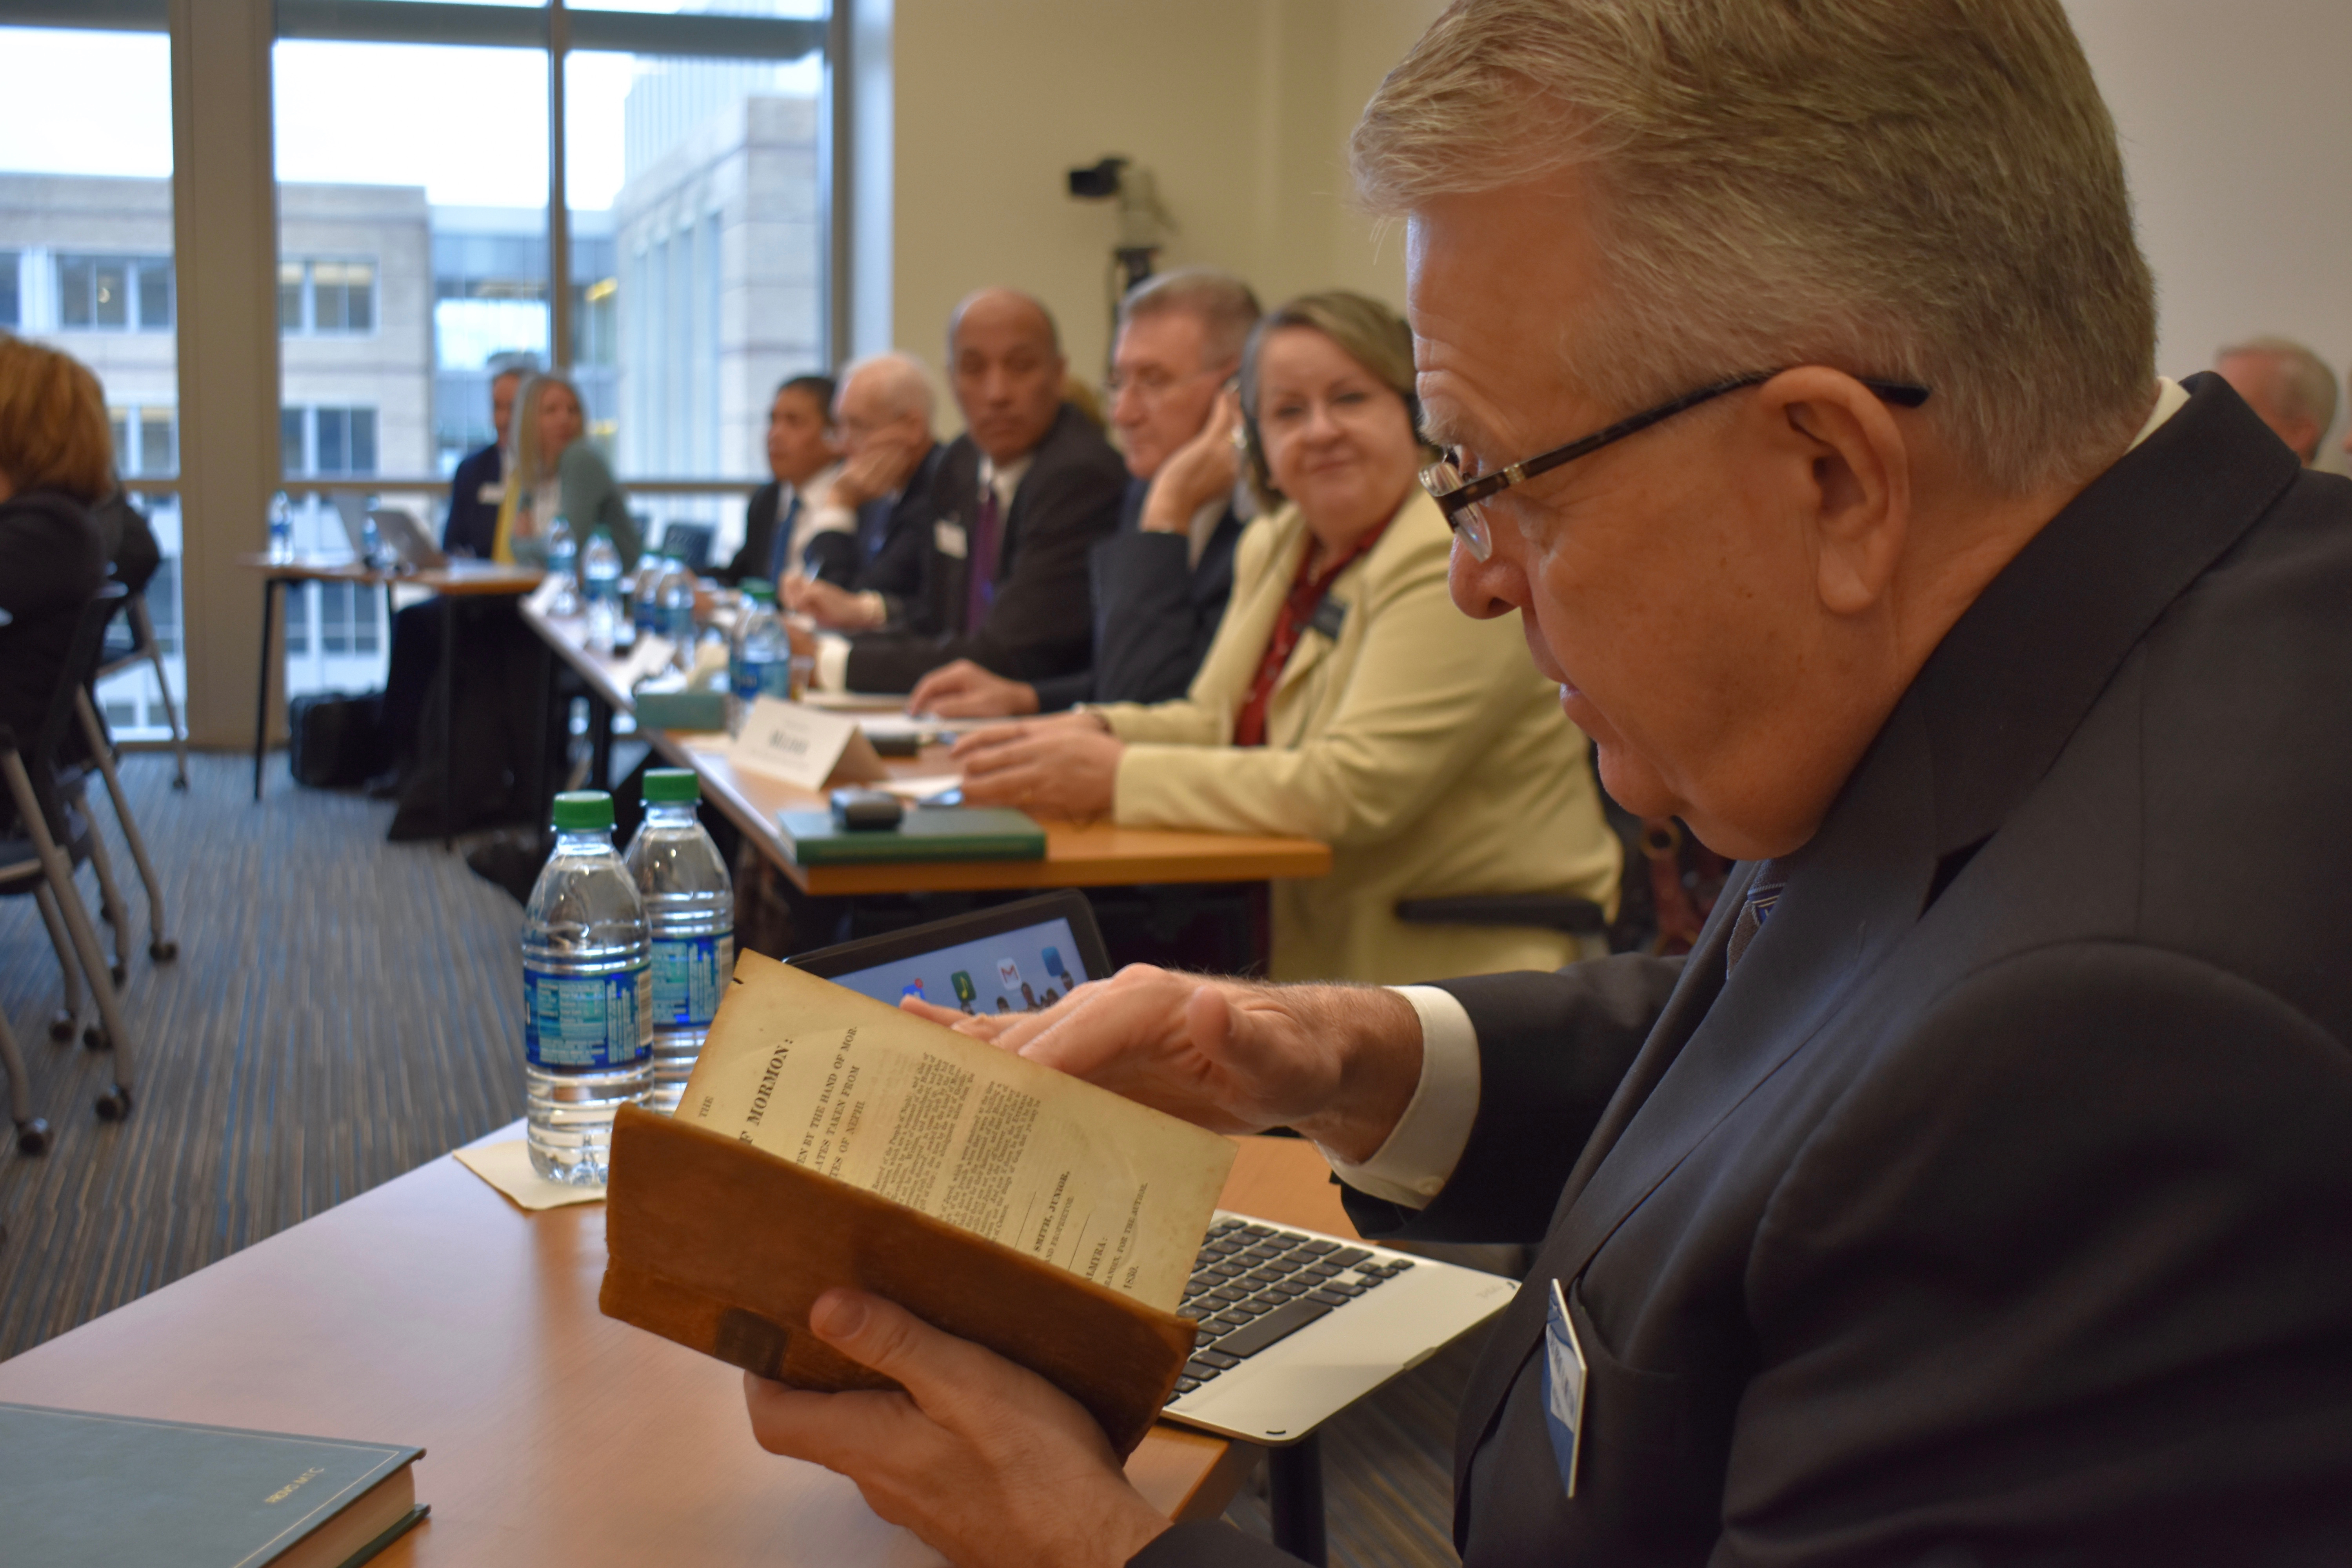 Elder Brent H. Nielson, a General Authority Seventy and executive director of the Missionary Department, thumbs through a first-edition copy of the Book of Mormon on Jan. 16, 2019 during the 2019 MTC Leadership Seminar at the Provo Missionary Training Center.